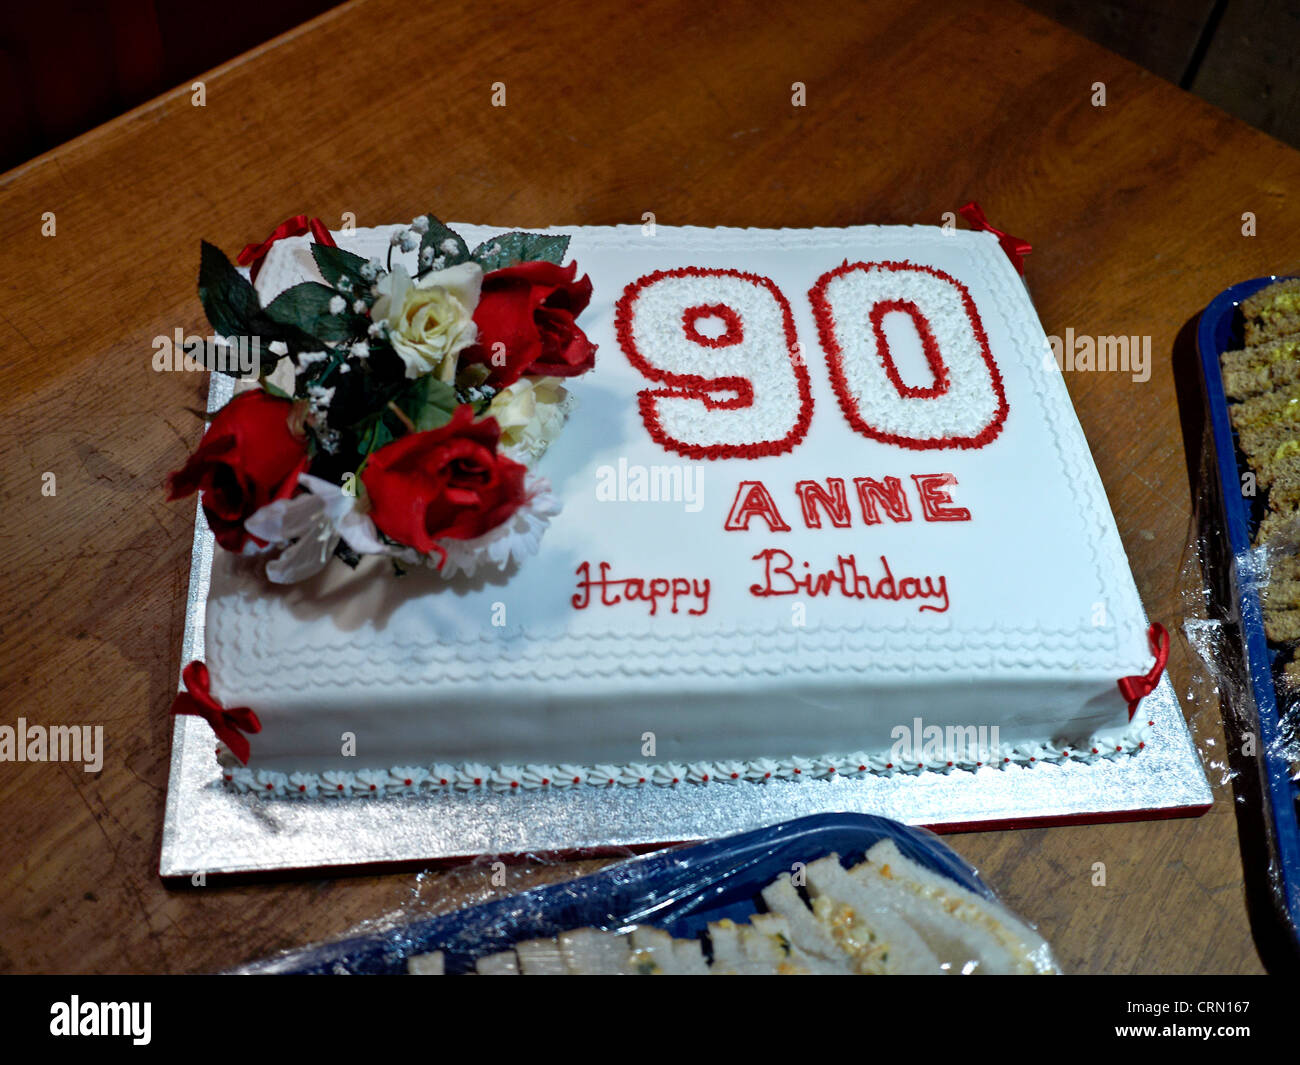 Cake Decorating Ideas For A 90 Year Old : Birthday cake for a 90 year old suitably decorated Stock ...